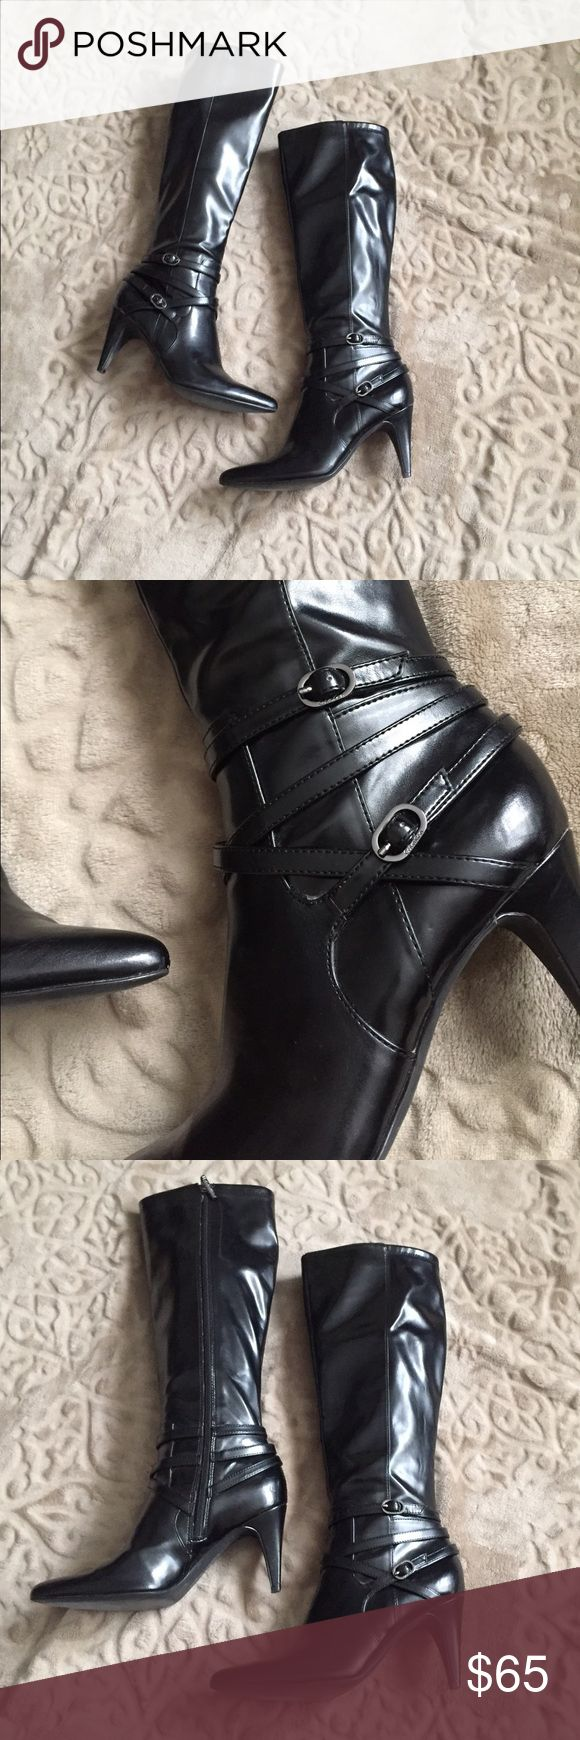 Beautiful Tall Black Boots. Beautiful Tall Black Boots. Very Nice Leather, Not Too Shiny but Not Dull. In Great Condition. One Small Indentation on one Heel, but Not a Scuff, Hardly Noticeable. Super Comfortable. Fashionable but Discreet Enough for the Office with a Nice Skirt. . Calvin Klein Shoes Heeled Boots